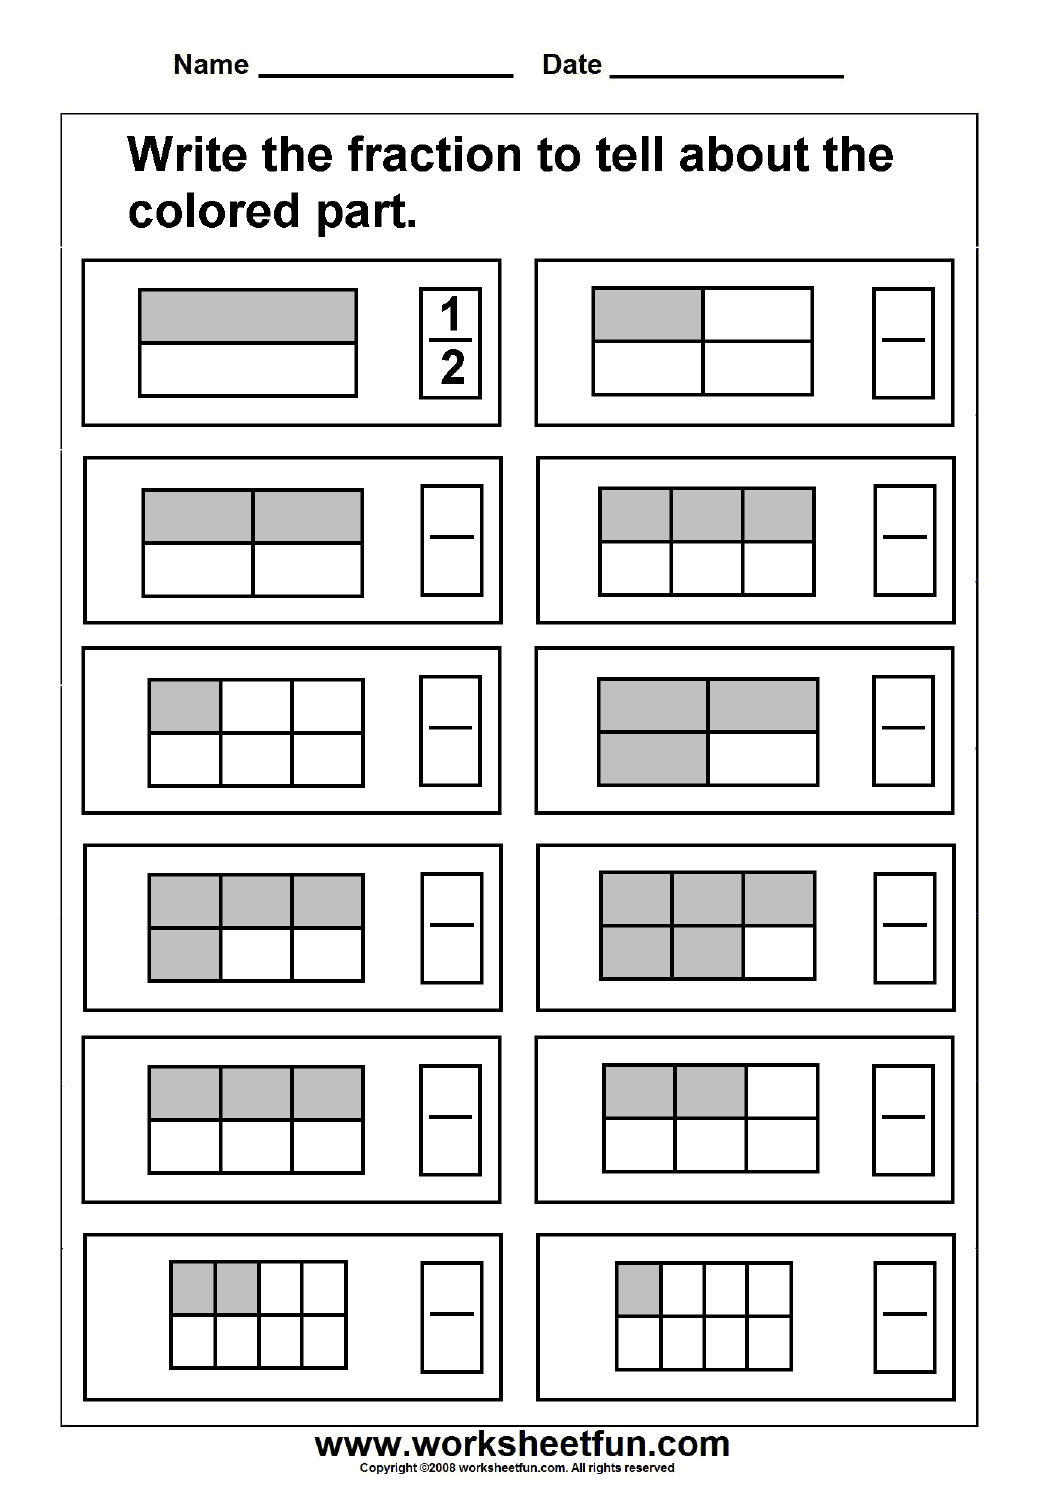 Worksheets Fun Fraction Worksheets fraction free printable worksheets worksheetfun model 3 worksheets